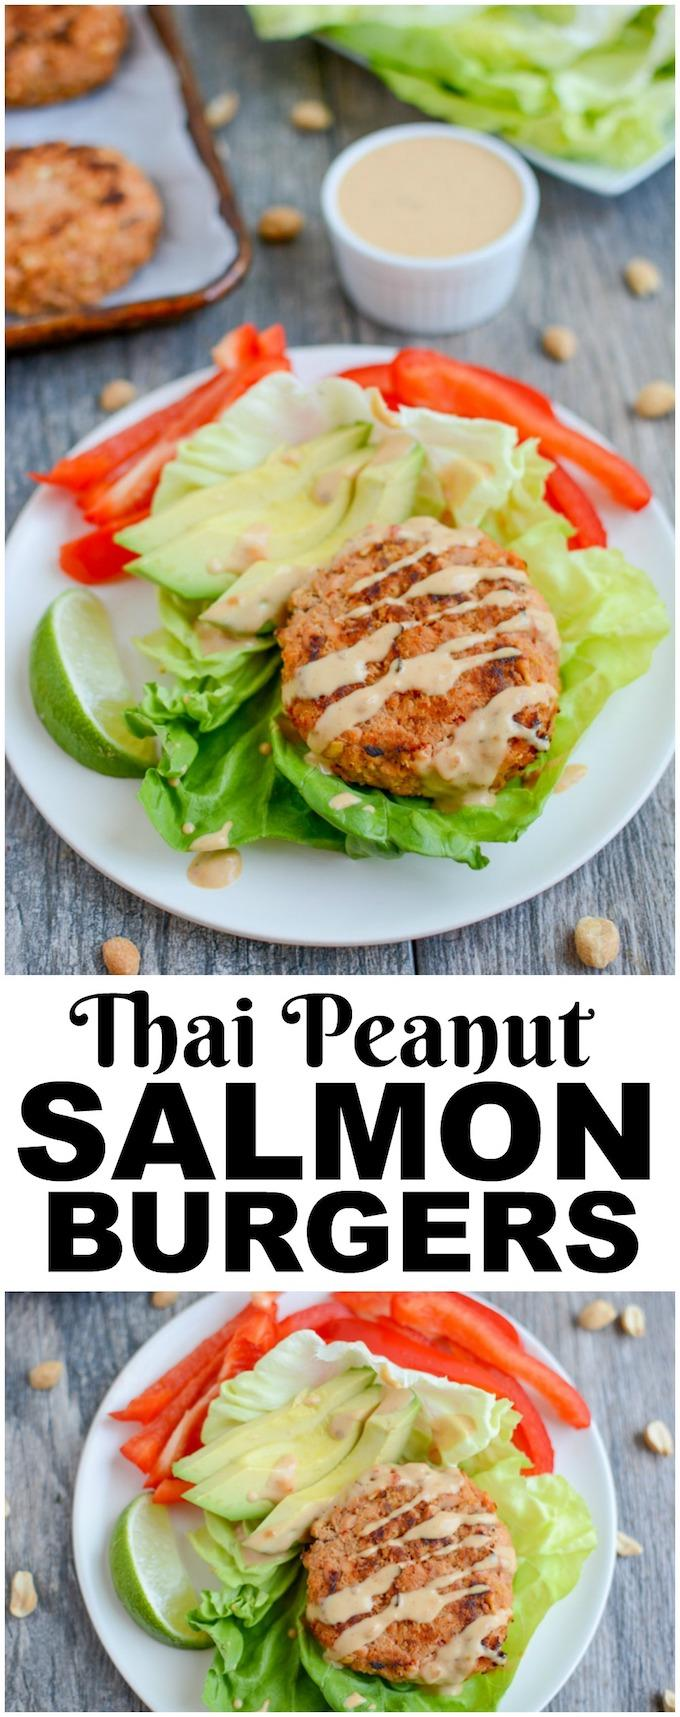 These Thai Peanut Salmon Burgers are a fun change from a traditional meat-based burgers. They're full of flavor or great on a bun, in a lettuce wrap or on a salad.